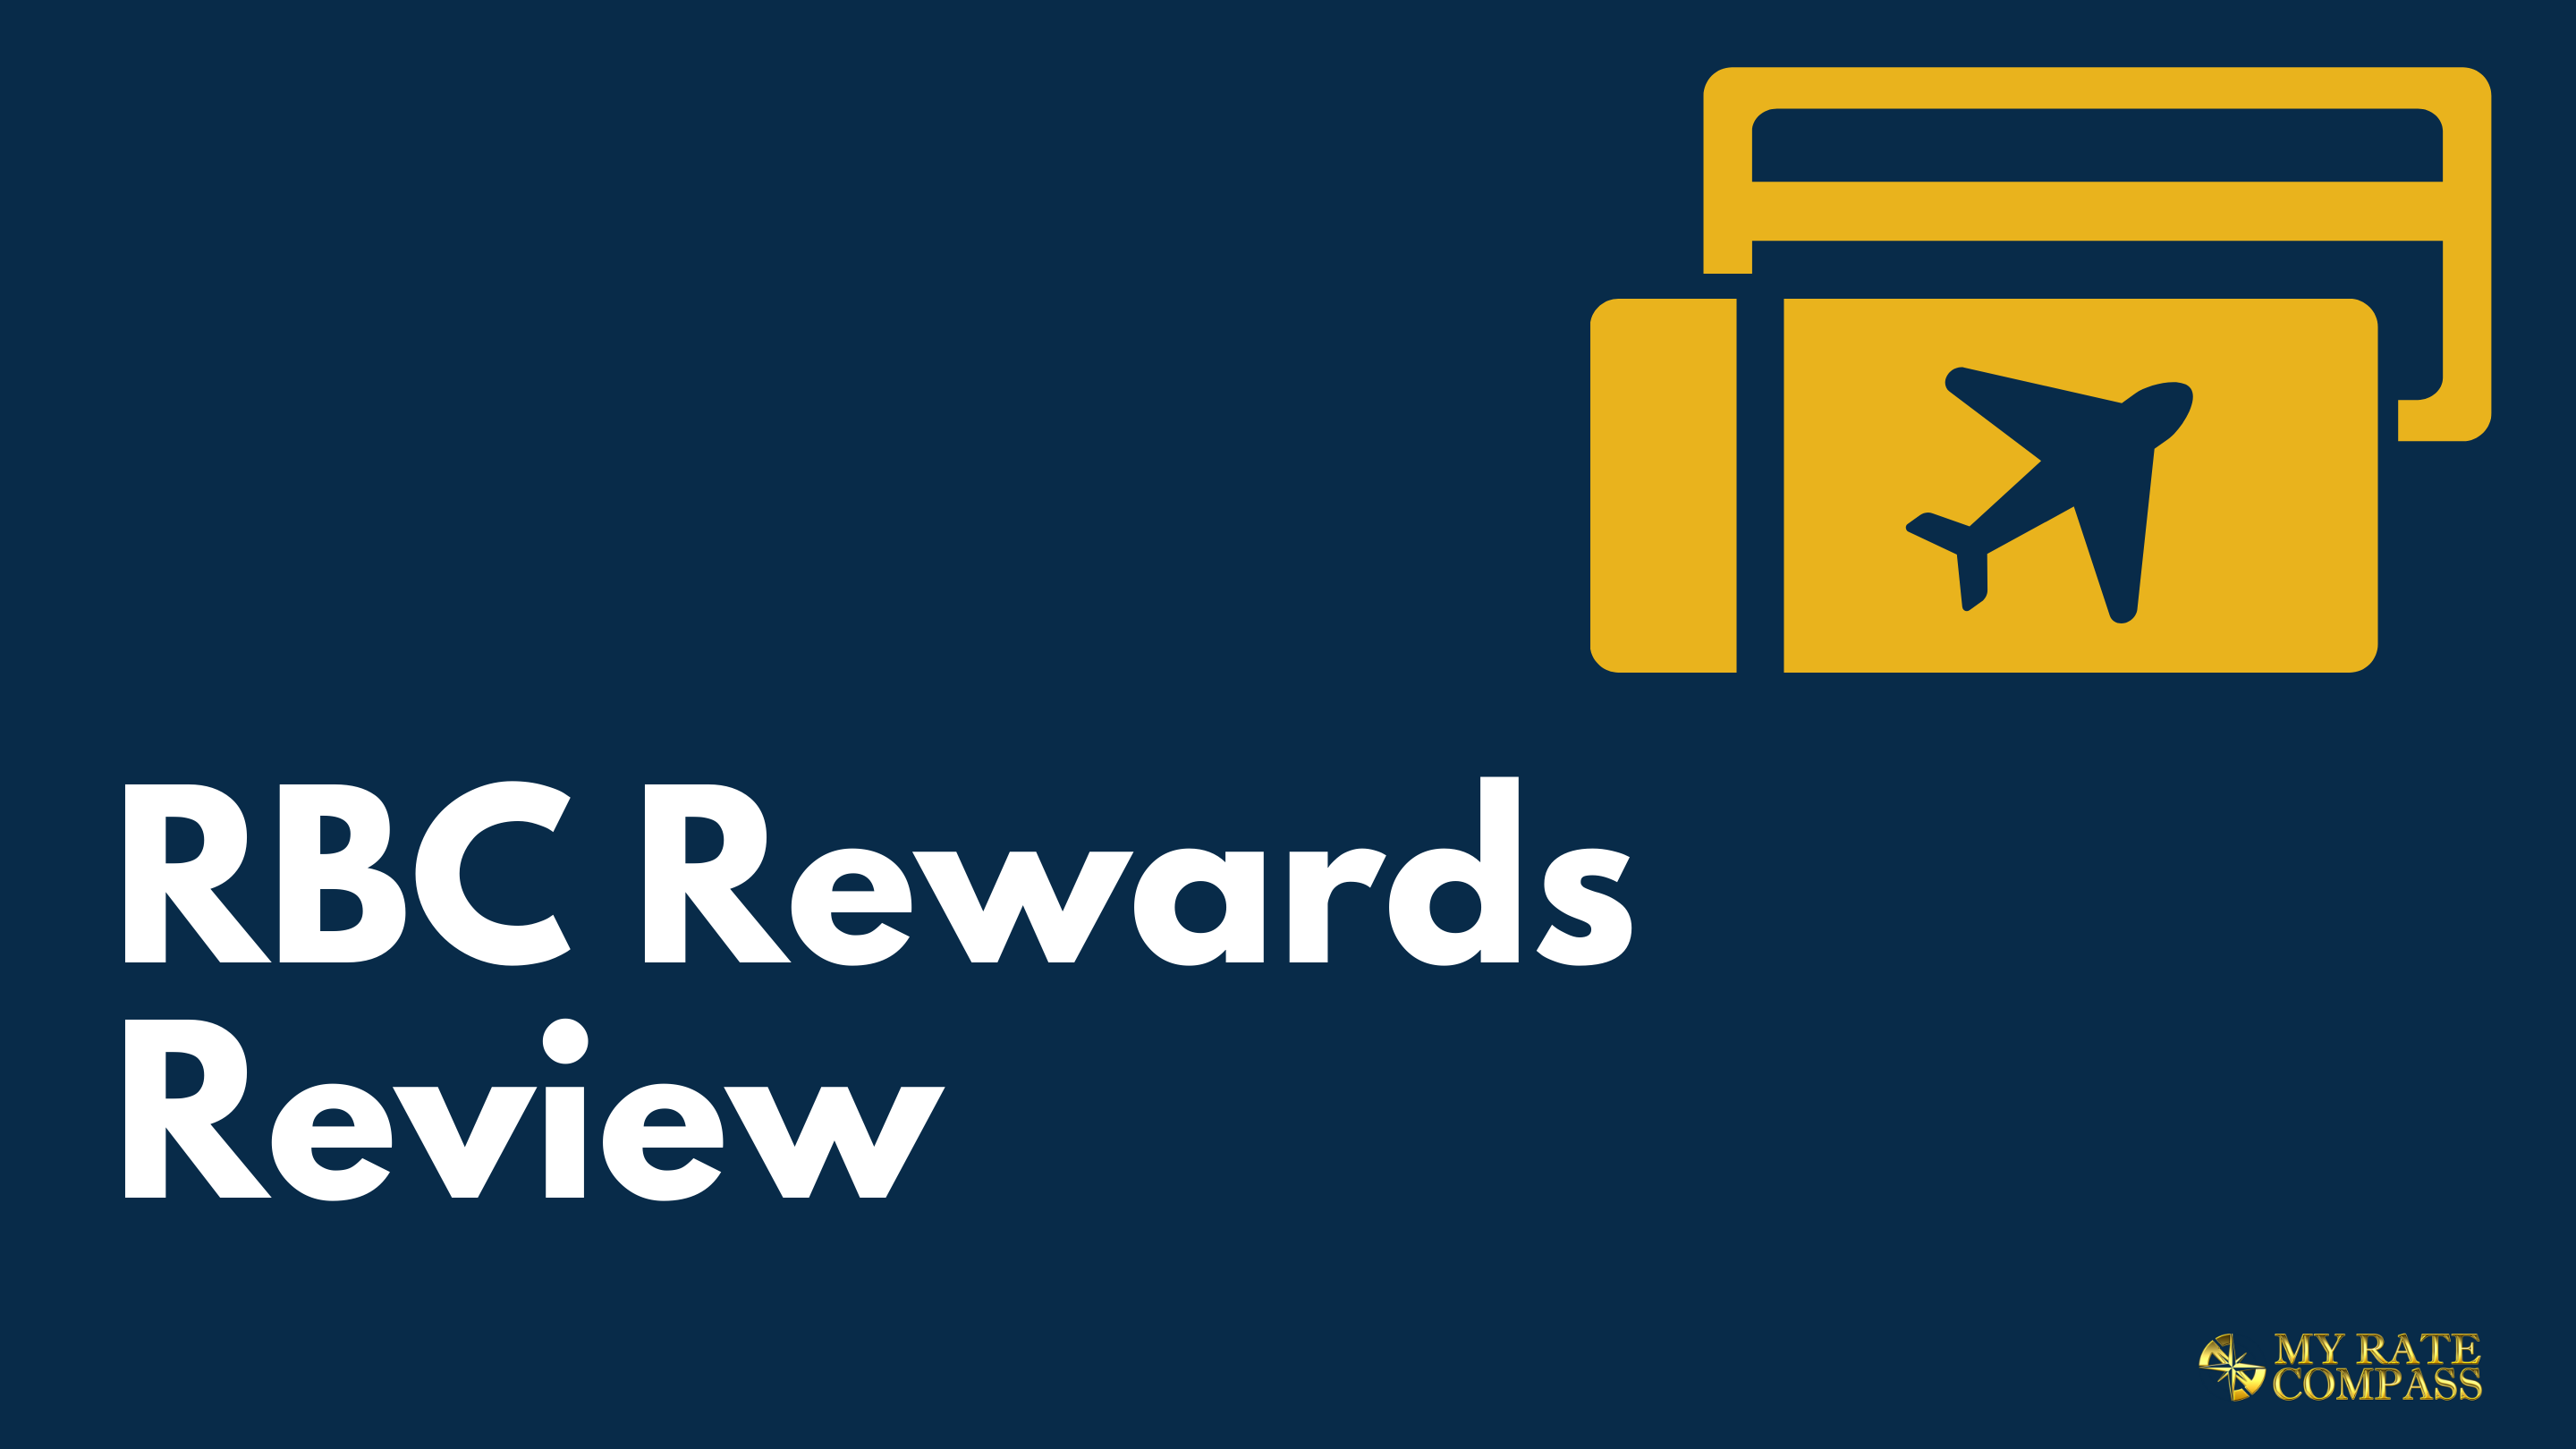 RBC Rewards Program